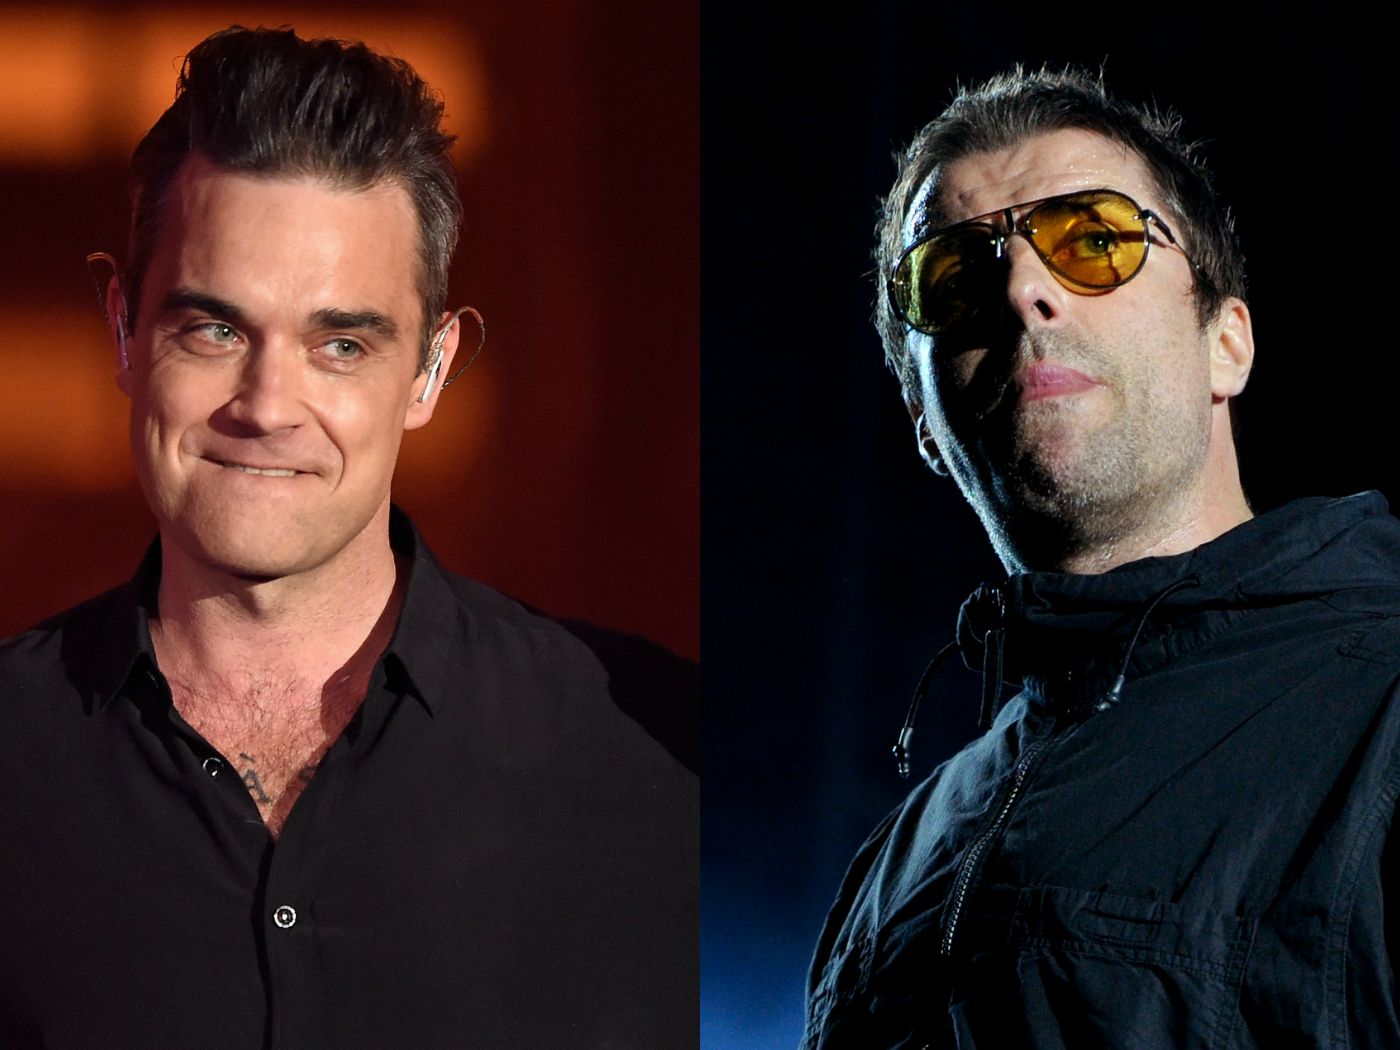 """Robbie Williams says he wants to fight """"school bully"""" Liam Gallagher - NME Music News, Reviews, Videos, Galleries, Tickets and Blogs   NME.COM"""